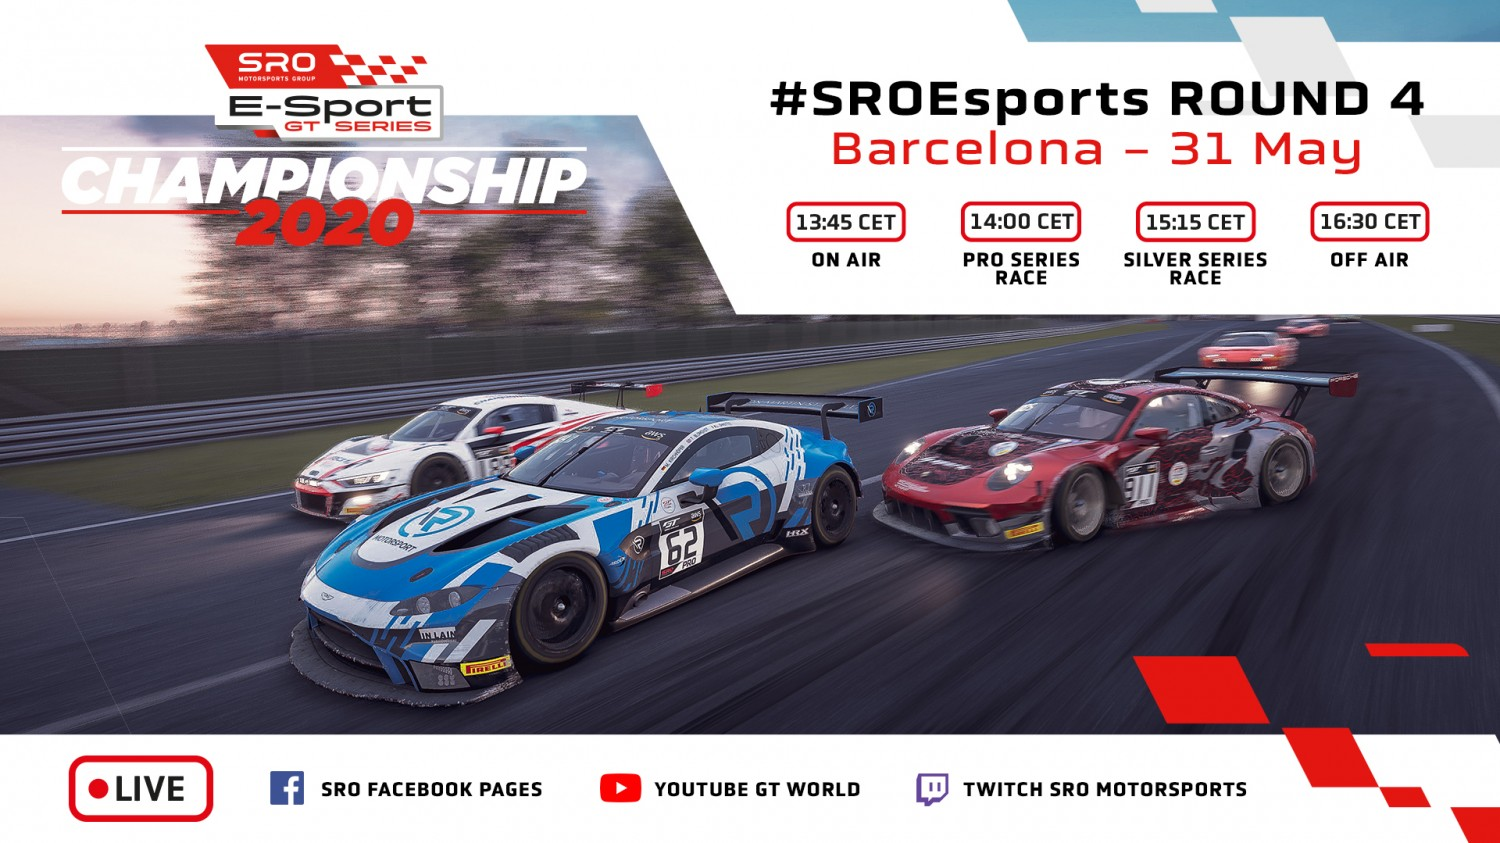 Action-packed weekend in store as SRO E-Sport GT Series enters crucial phase